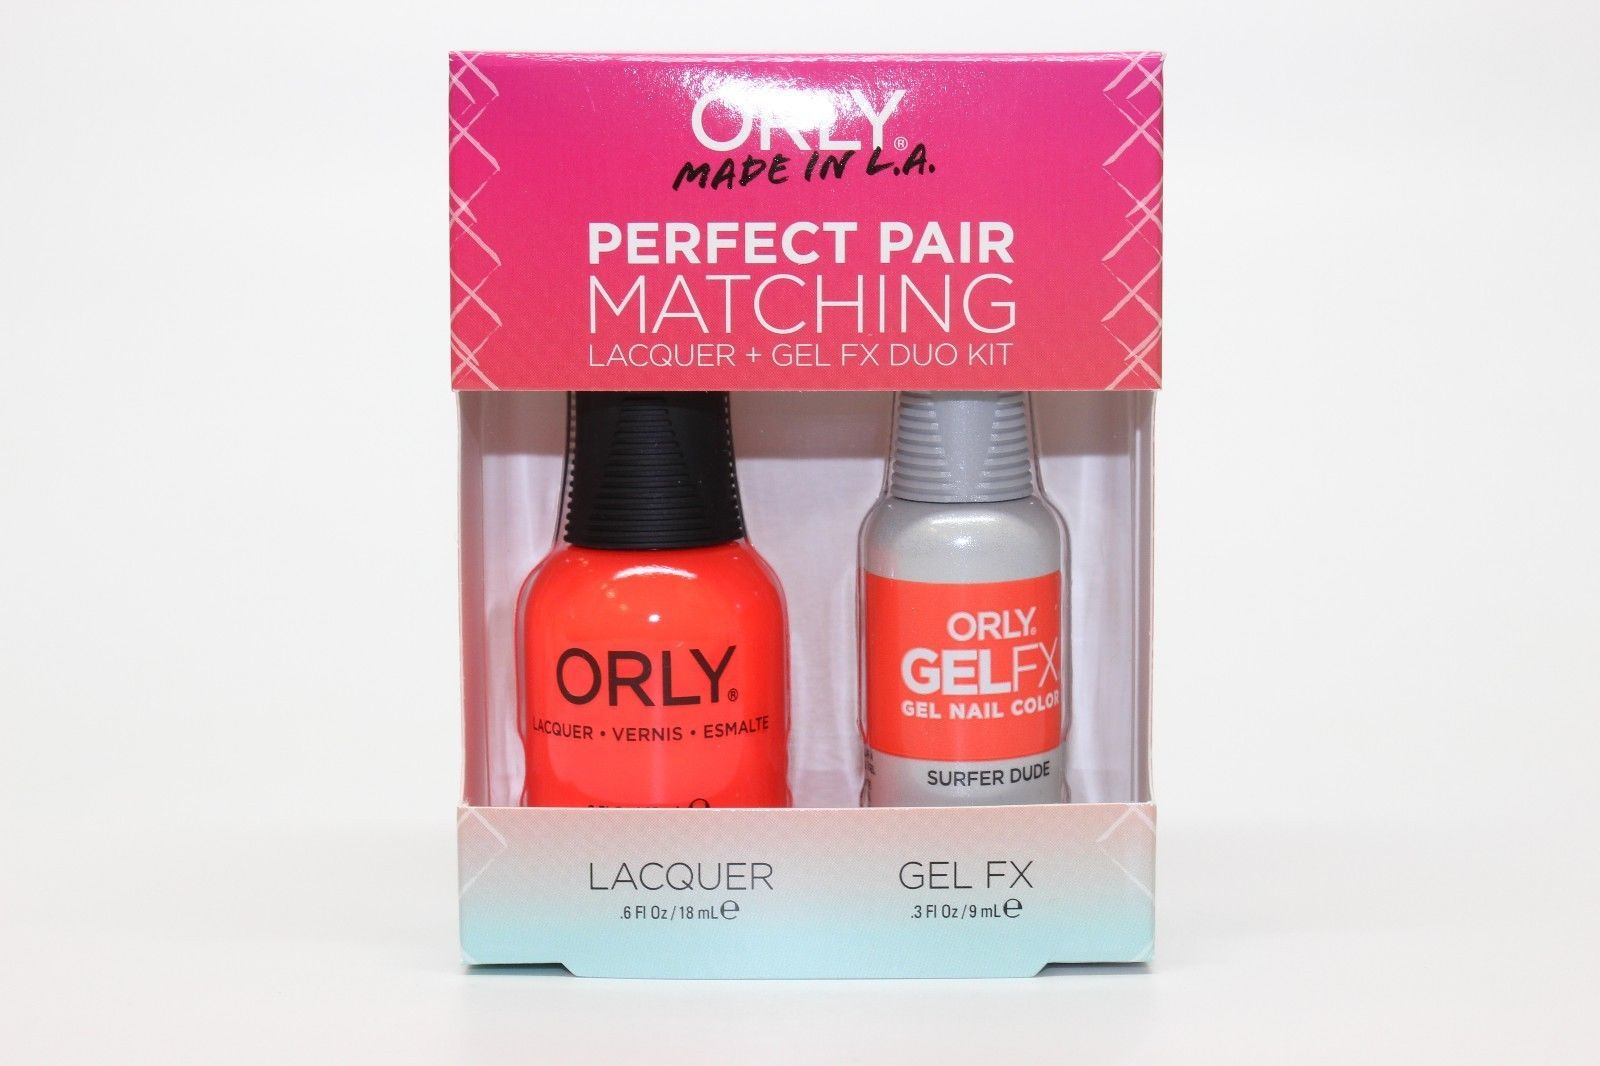 31154 - Orly Gel FX .3oz + Nail Lacquer .6oz and 25 similar items